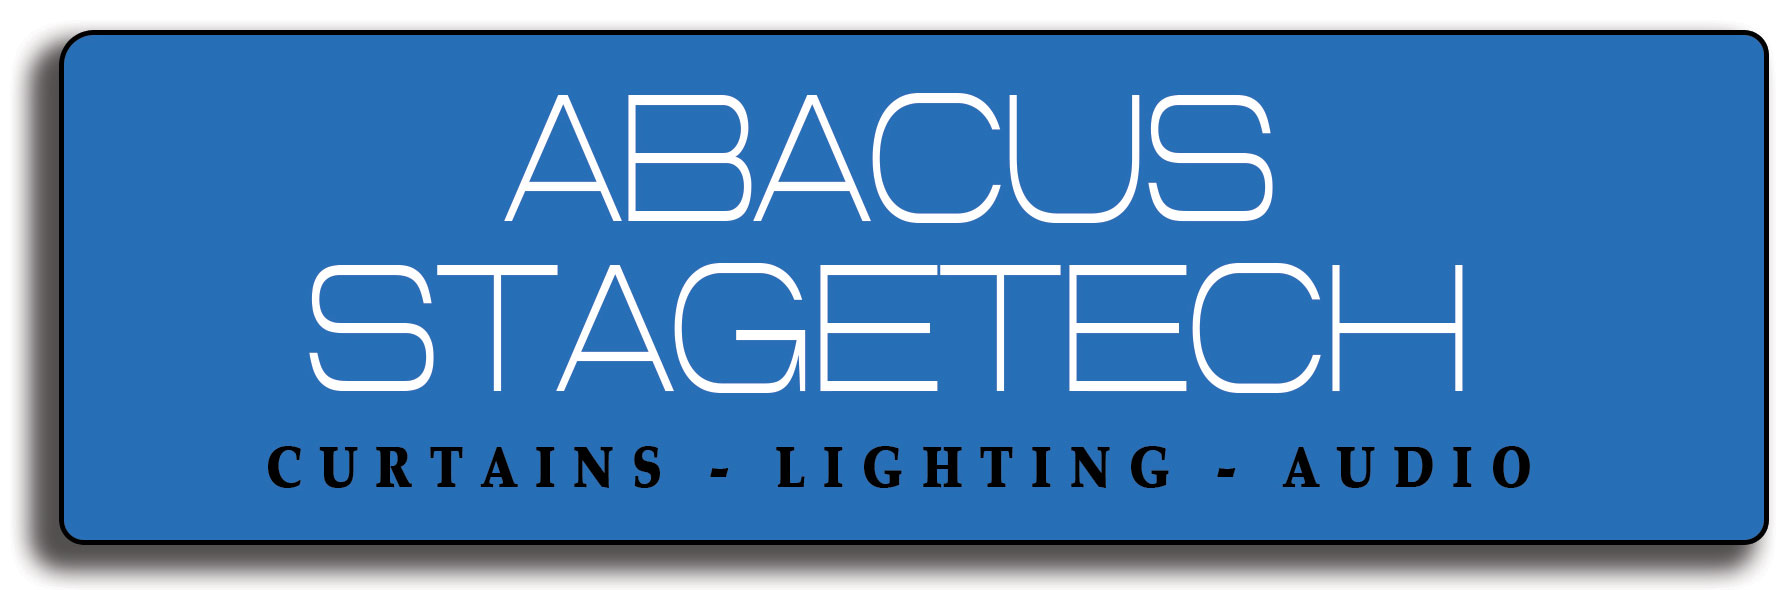 Abacus stage Tech